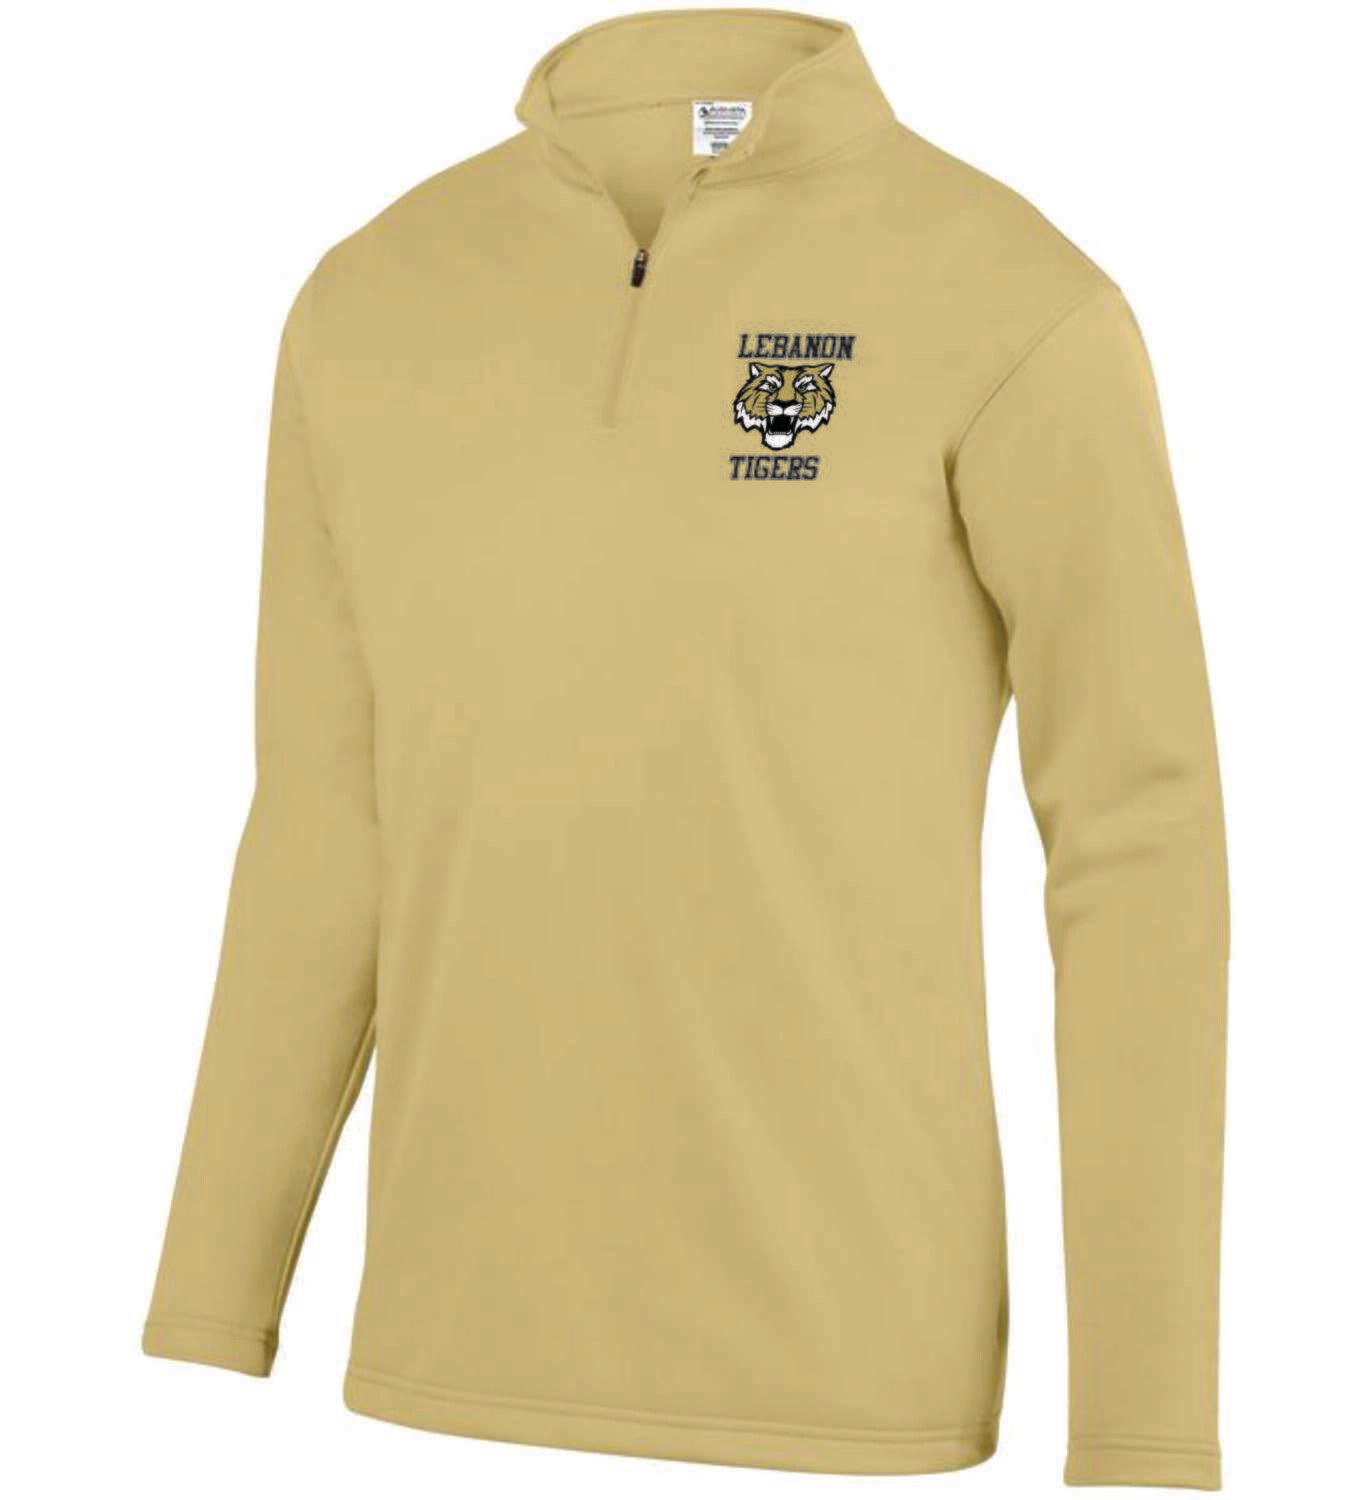 Ladies And Unisex Vegas Gold 1/4 Zip Embroidered Sweater